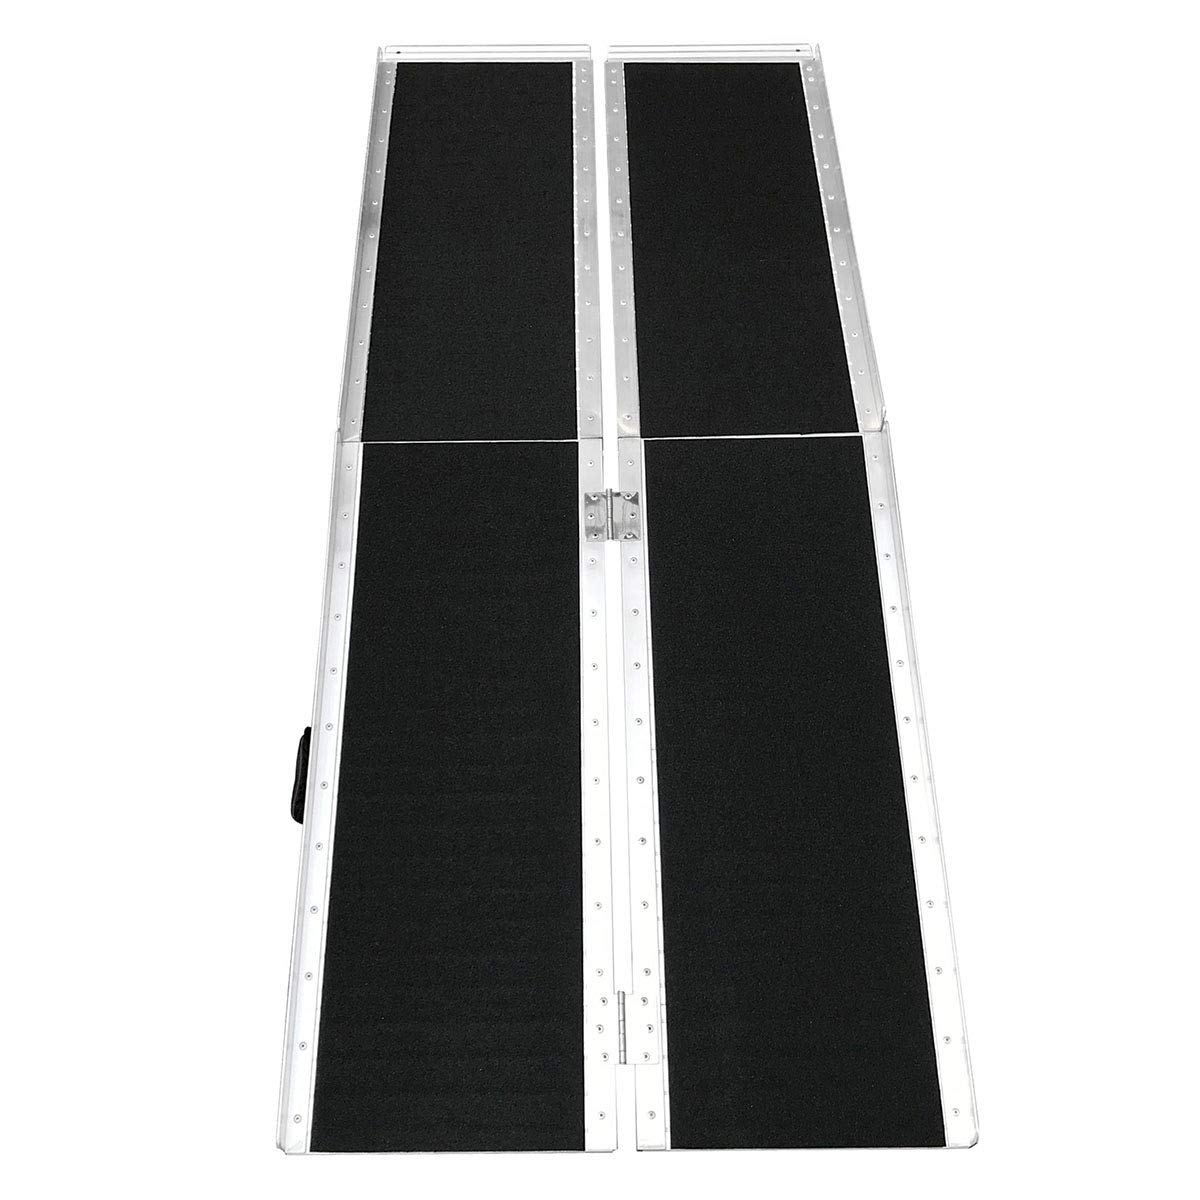 Clevr 6' (72'' X 31'') Non-Skid Aluminum Wheelchair Loading Traction Ramp, Lightweight Folding Portable, Single Fold Wheelchair Scooter Ramp, Extra Wide 31'', Holds up to 600 lbs by Clevr (Image #4)